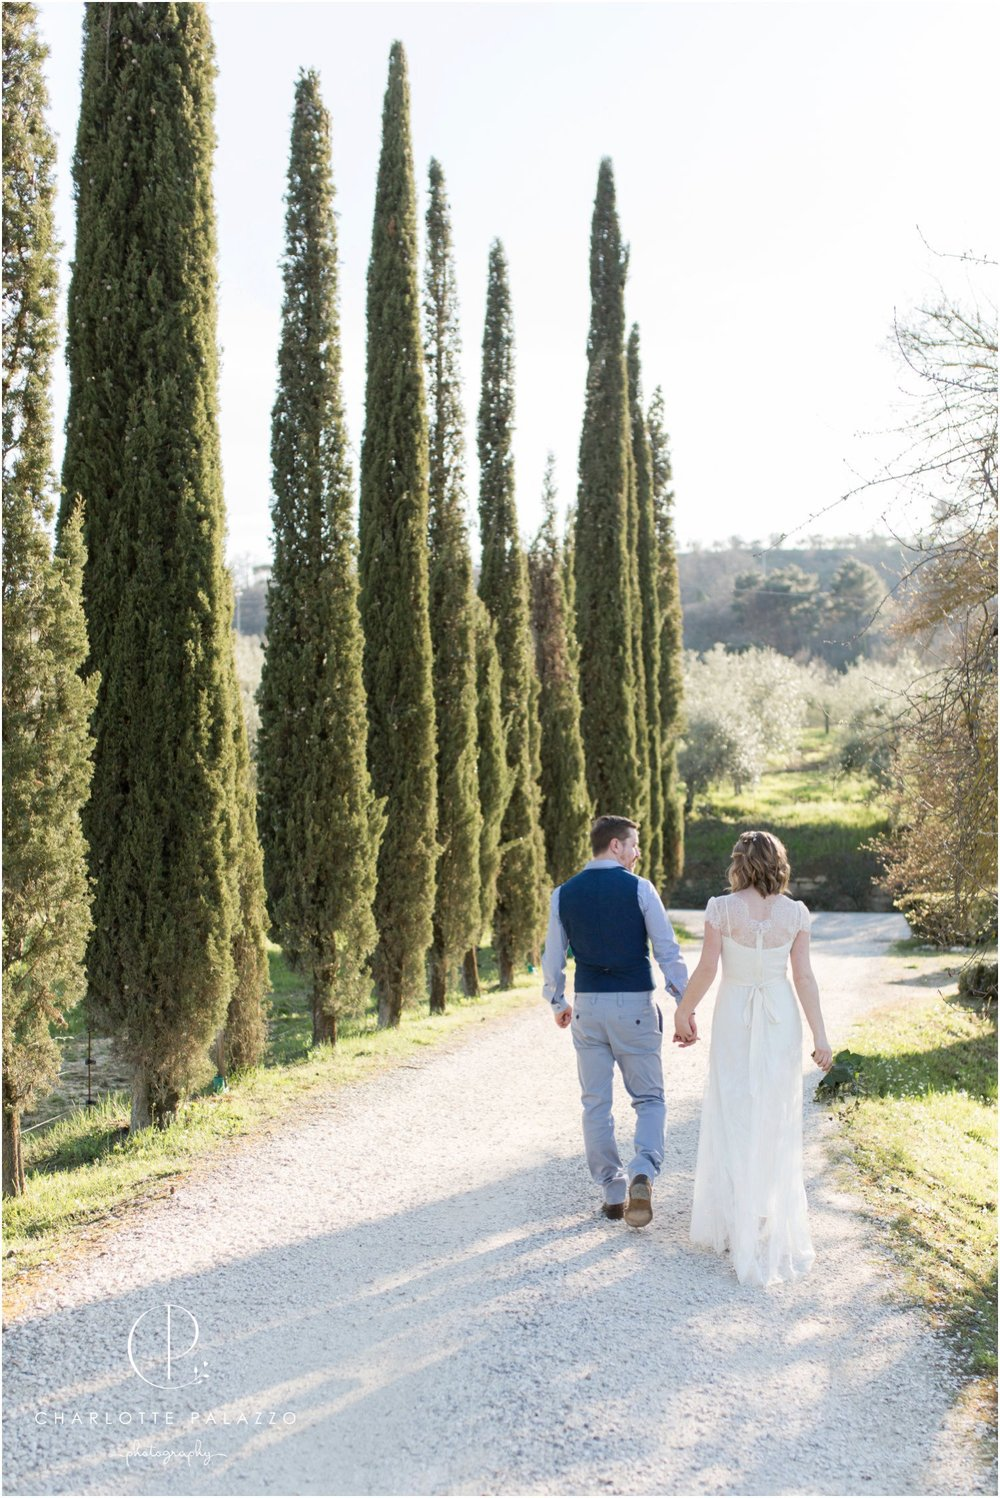 Destination_Wedding_Photographer_Florence_Italy_Tuscany_Locanda_Casanuova_Rustic_Wedding_0034.jpg